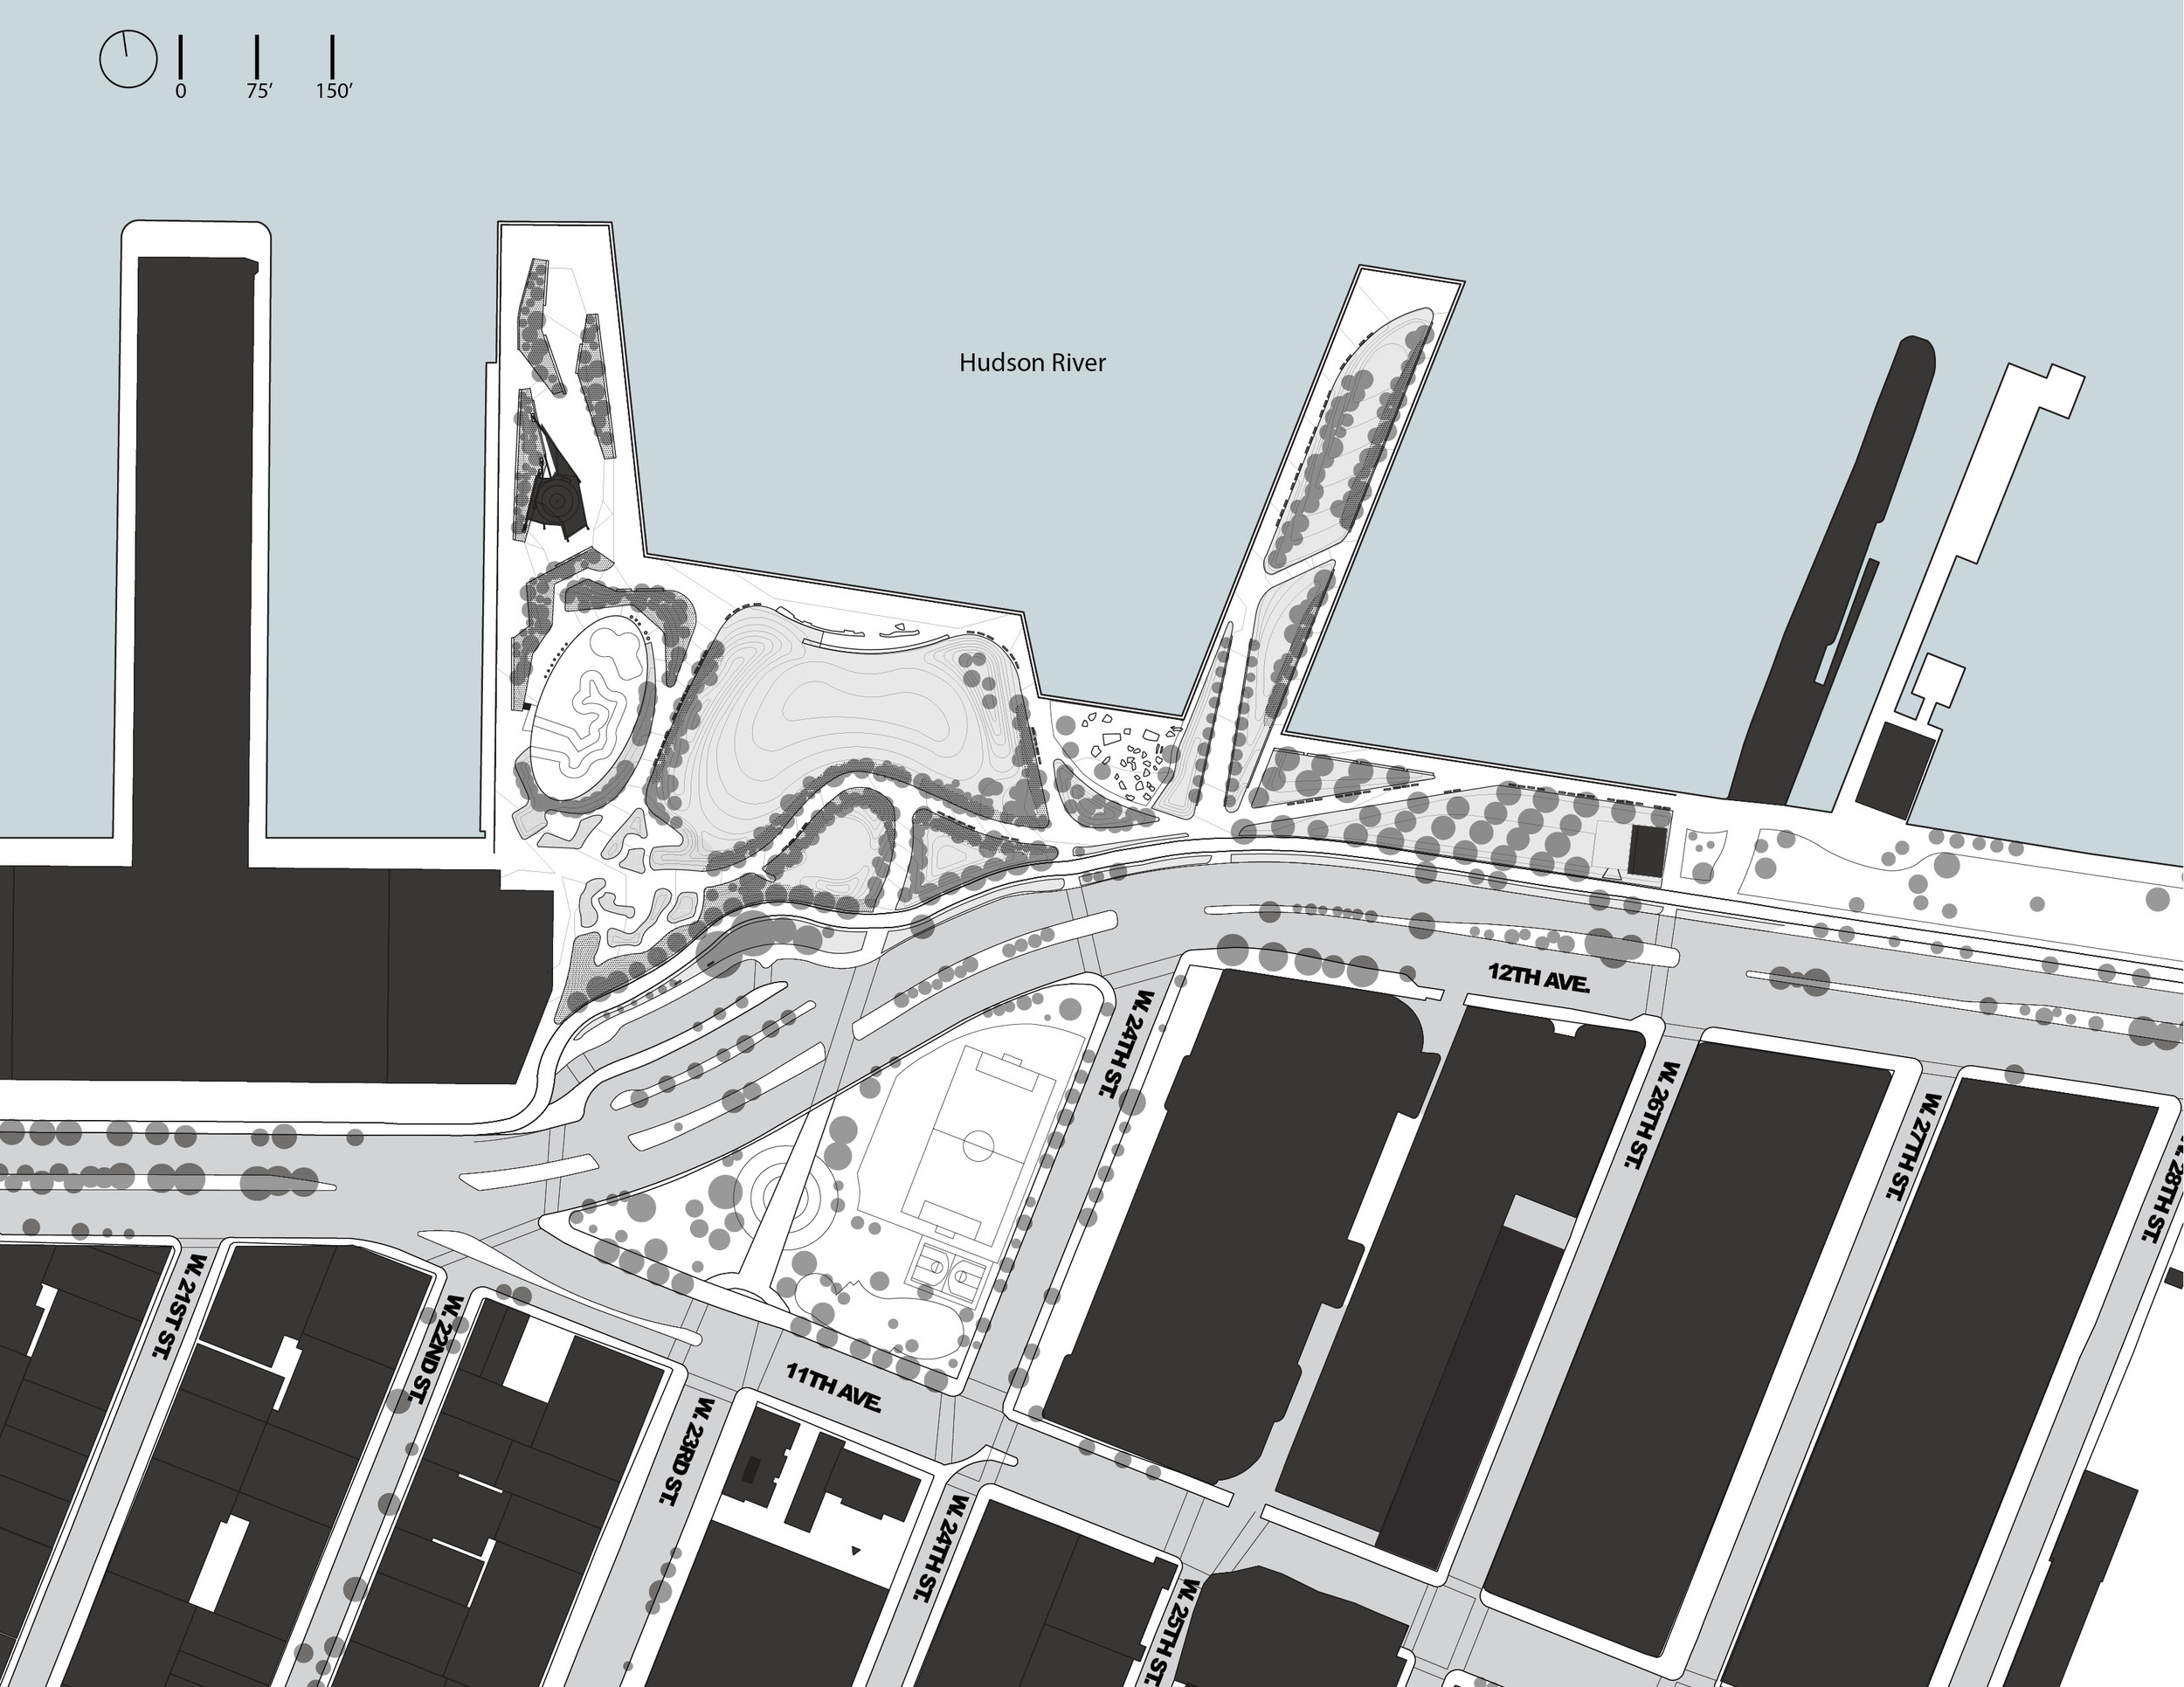 SITE PLAN AND SURROUNDING CONTEXT